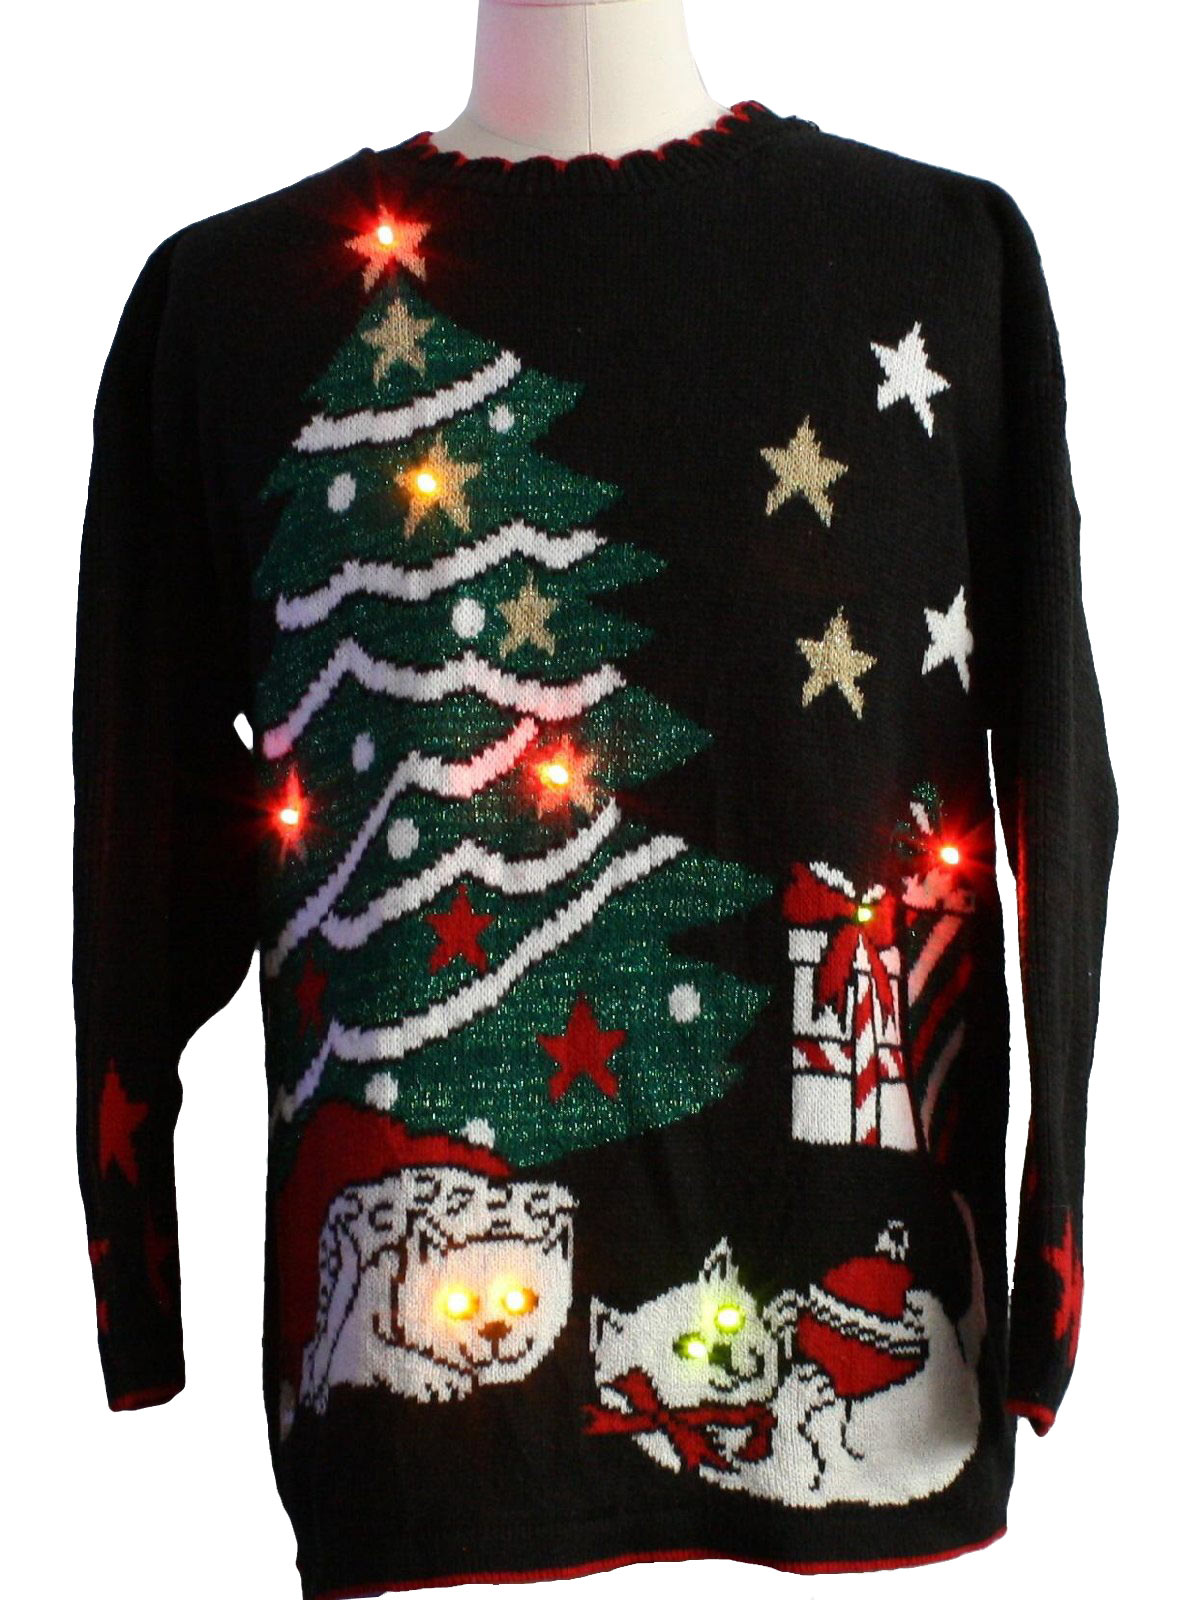 80s cat tastic light up ugly christmas sweater 80s authentic vintage holiday time unisex black background acrylic pullover longsleeve light up 10